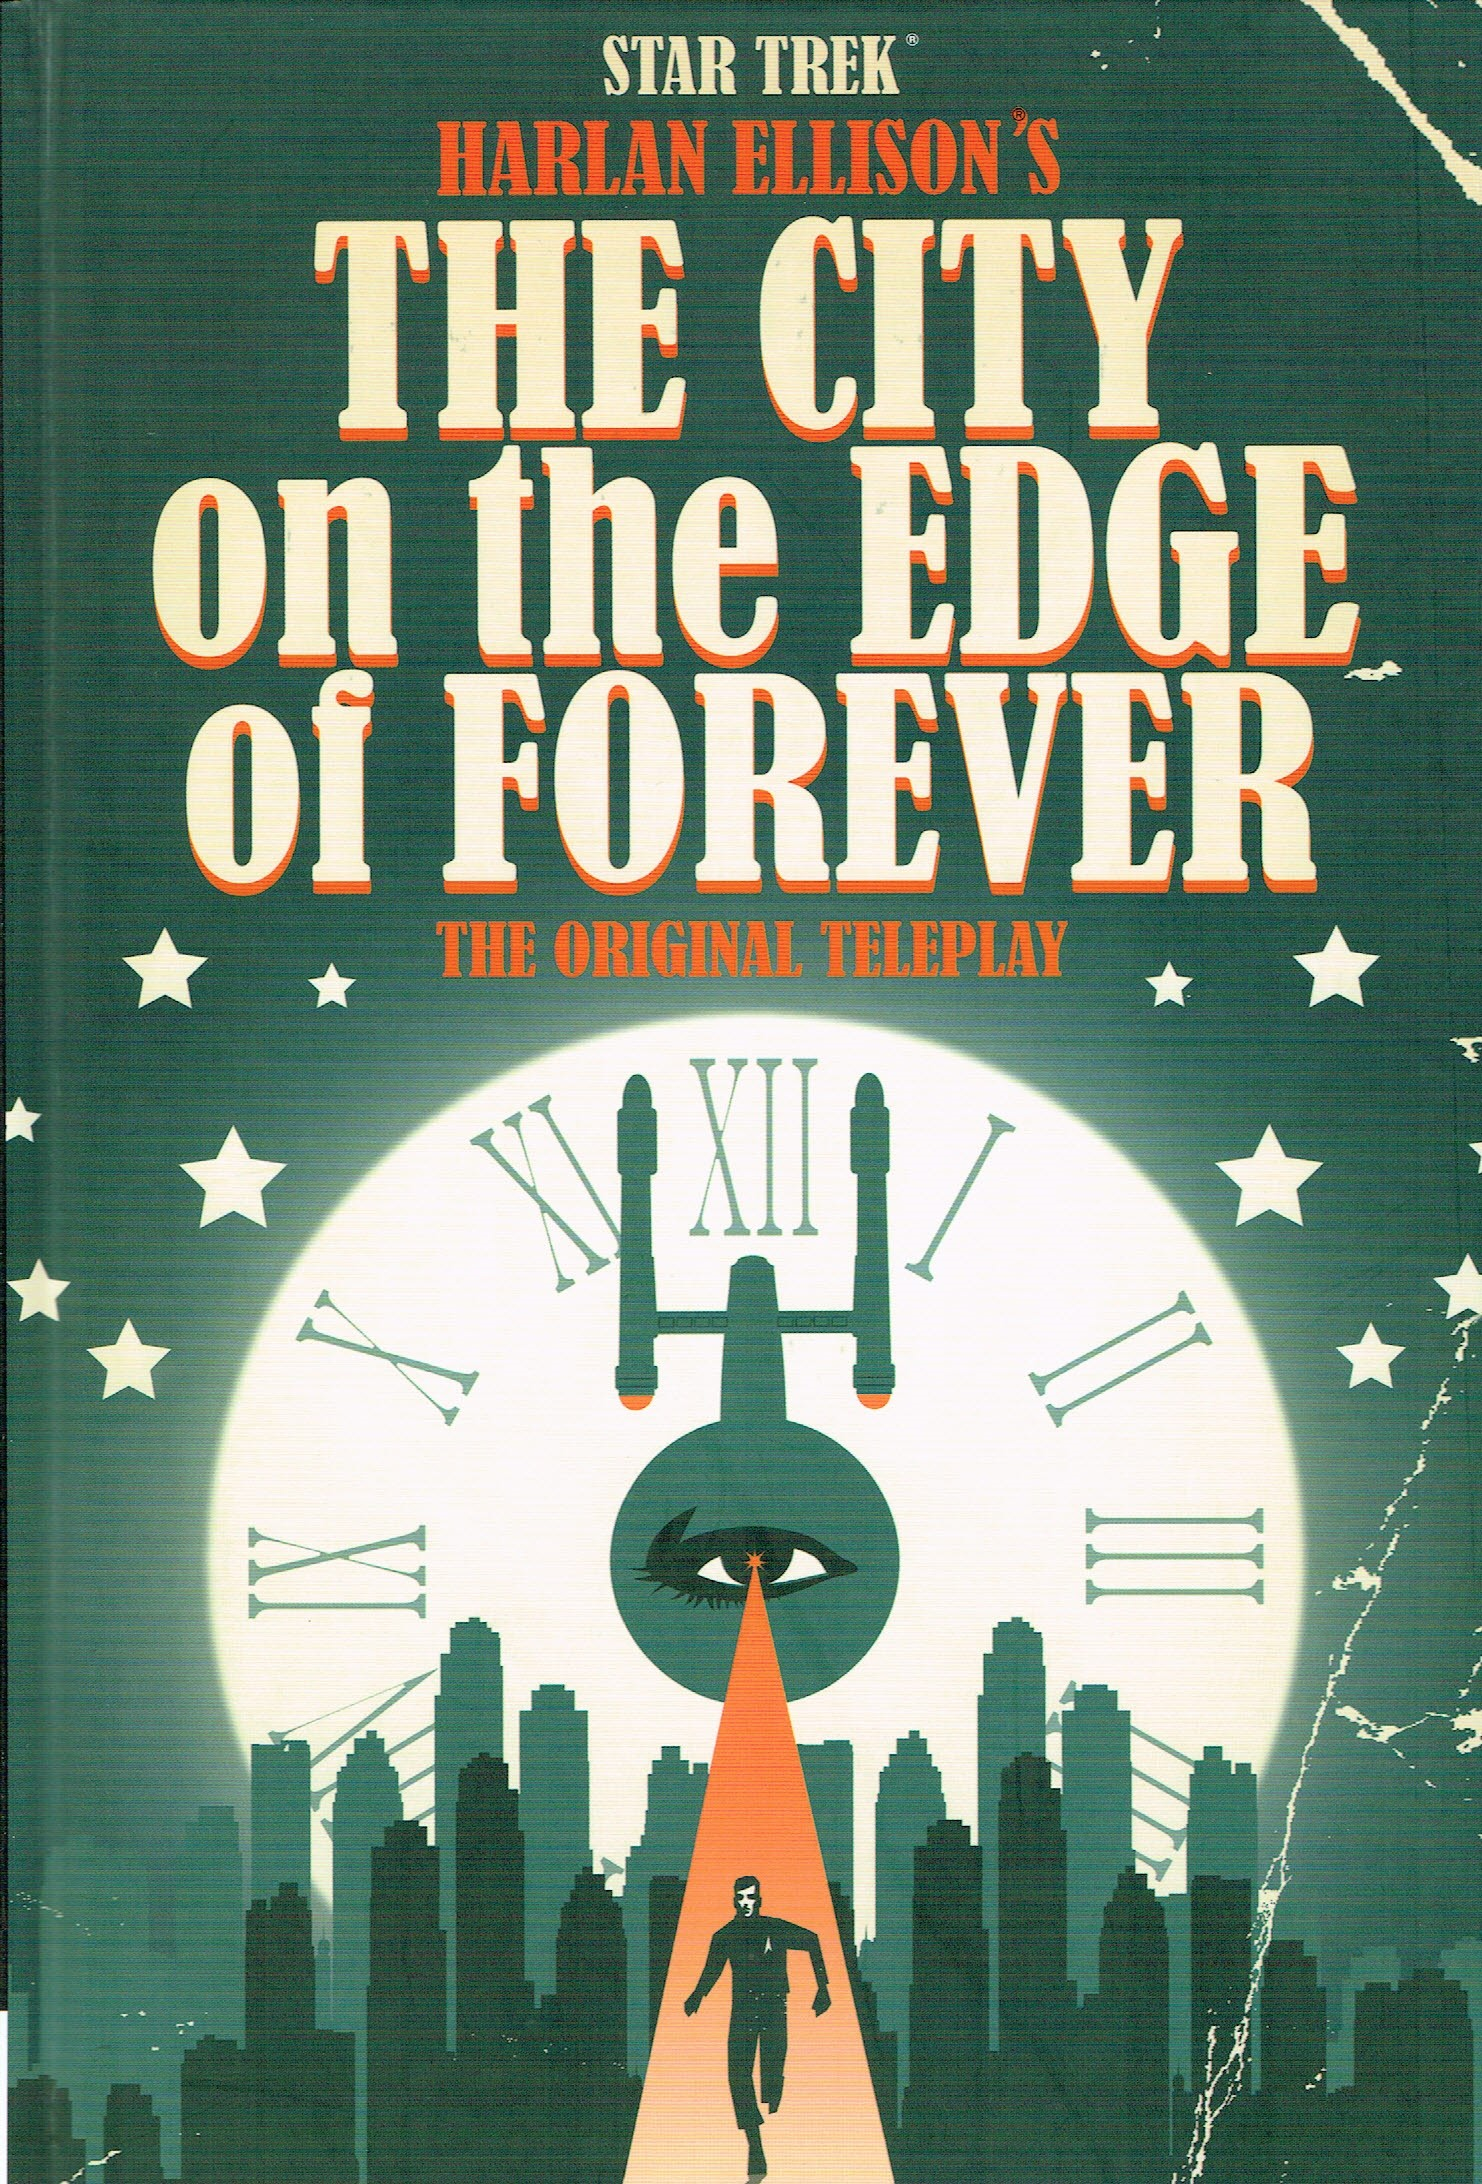 The cover of IDW's The City on the Edge of Forever graphic novel, depicting an illustration of the Enteprise, a clocl and the running figure of Kirk.